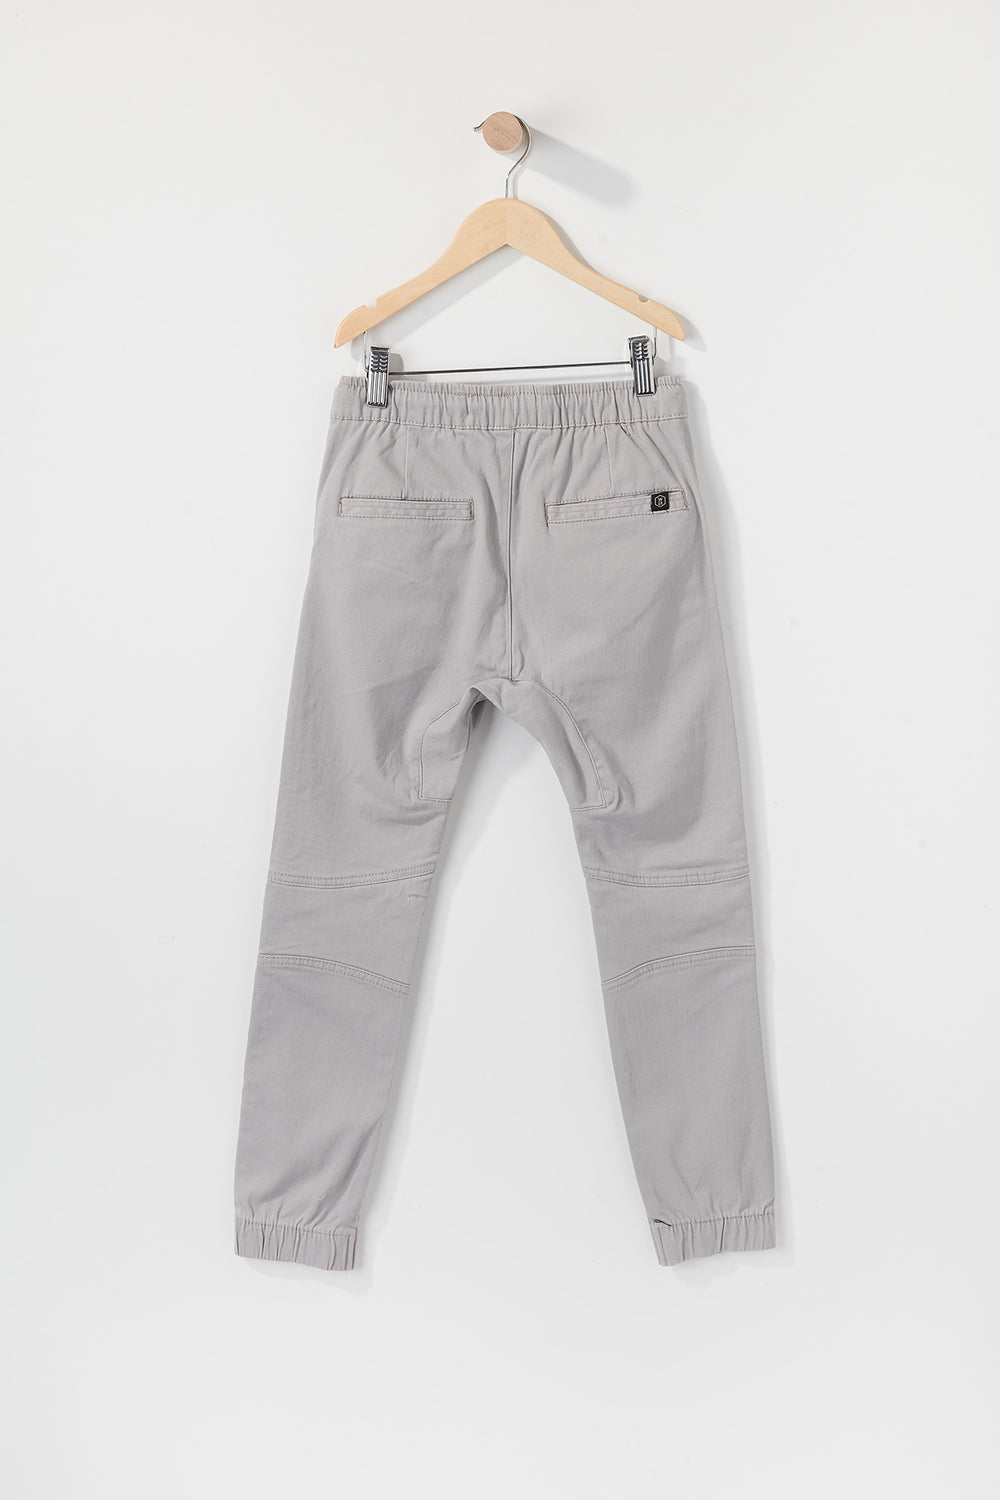 West49 Boys Moto Jogger Light Grey